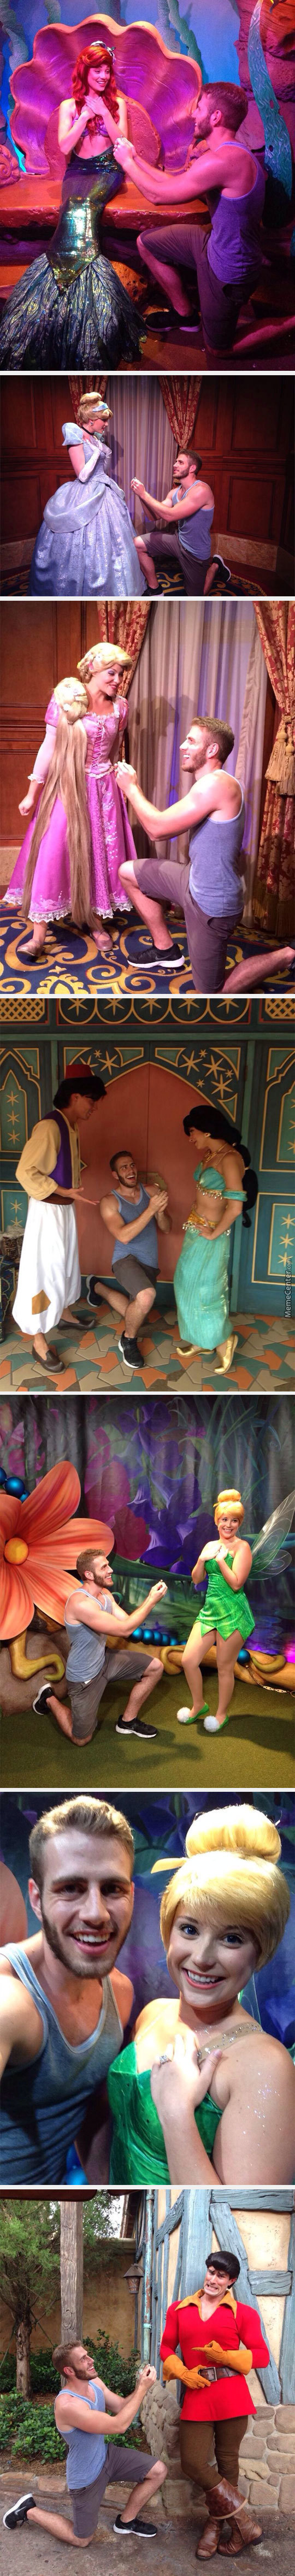 This Man Proposed To Disney Princesses